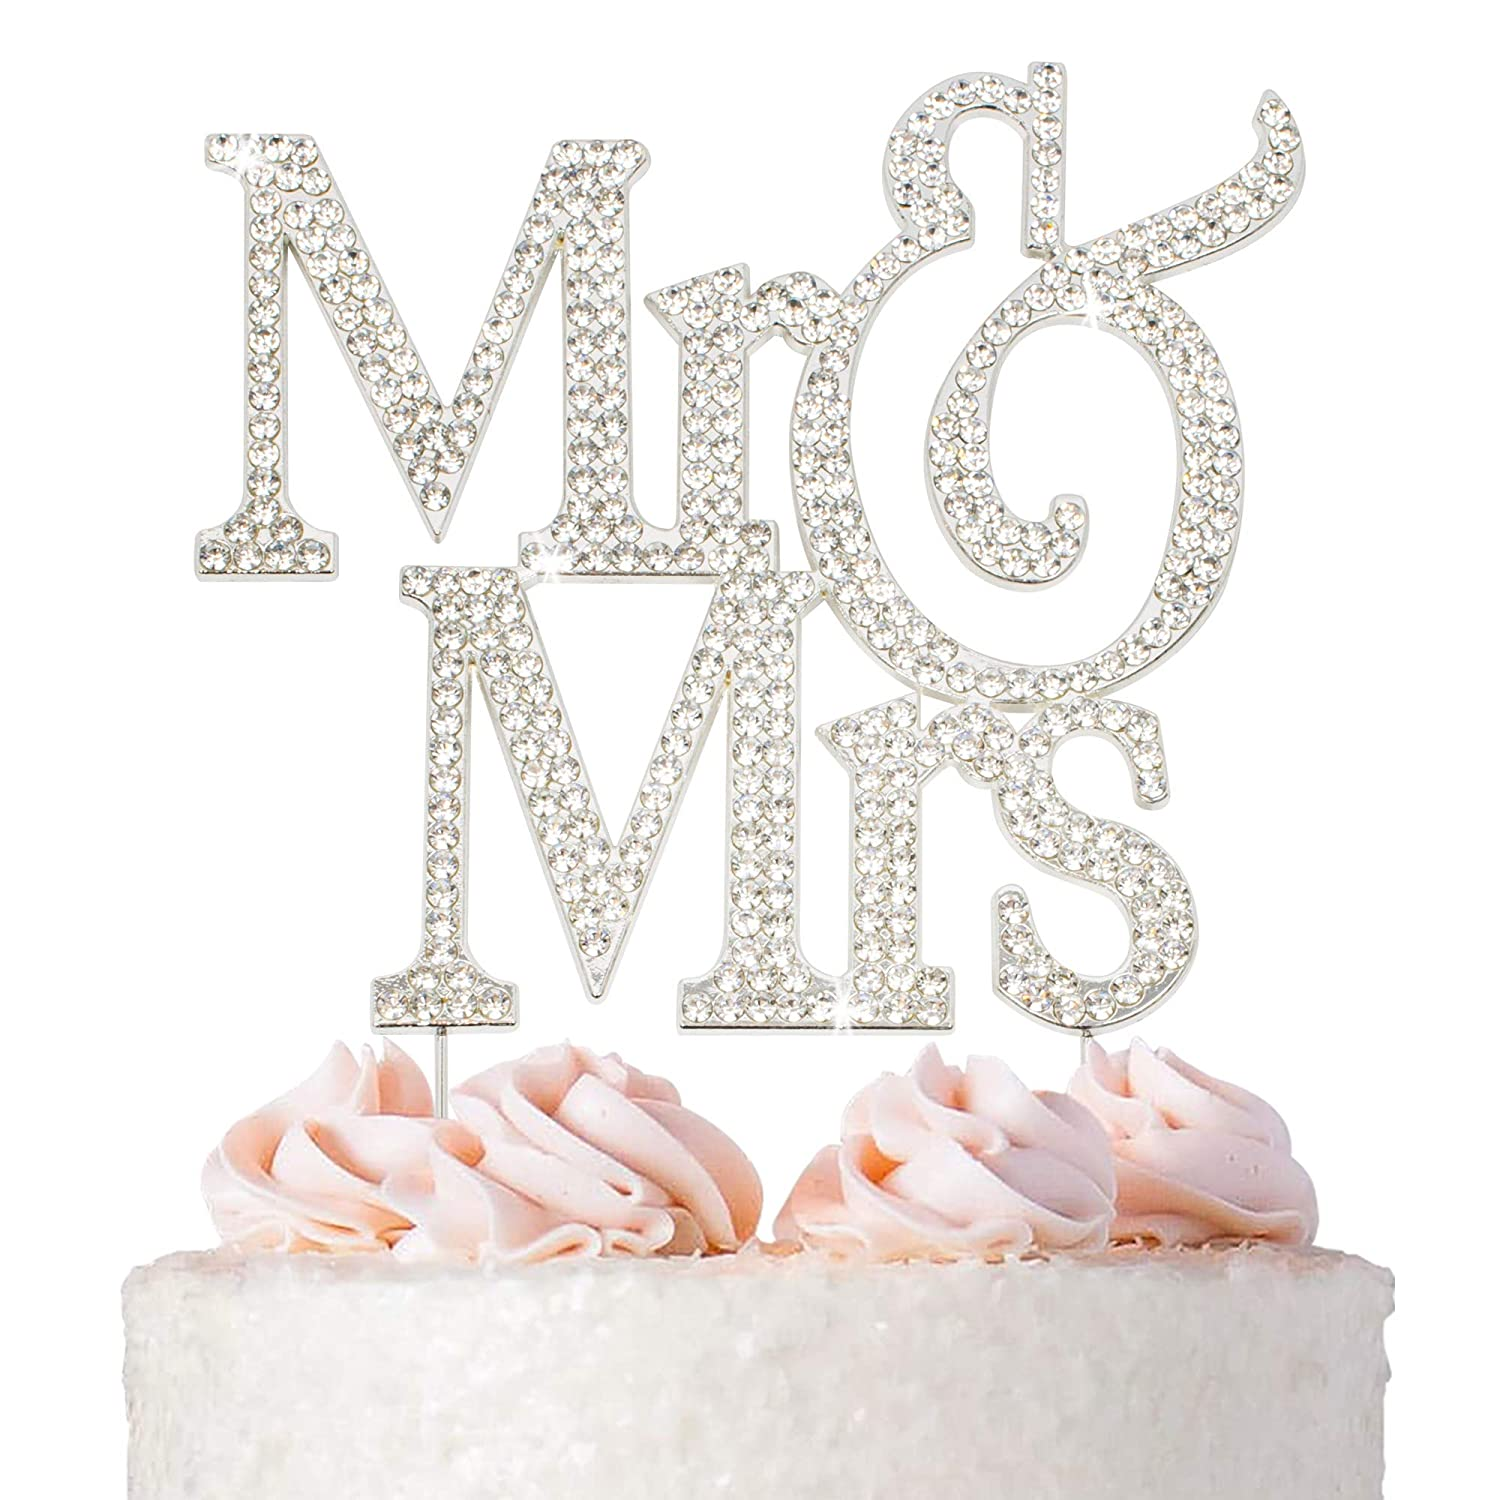 Mr And Mrs Wedding Cake Topper Premium Silver Metal Sparkly Wedding Or Anniversary Cake Topper Now Protected In A Box Amazon Com Grocery Gourmet Food